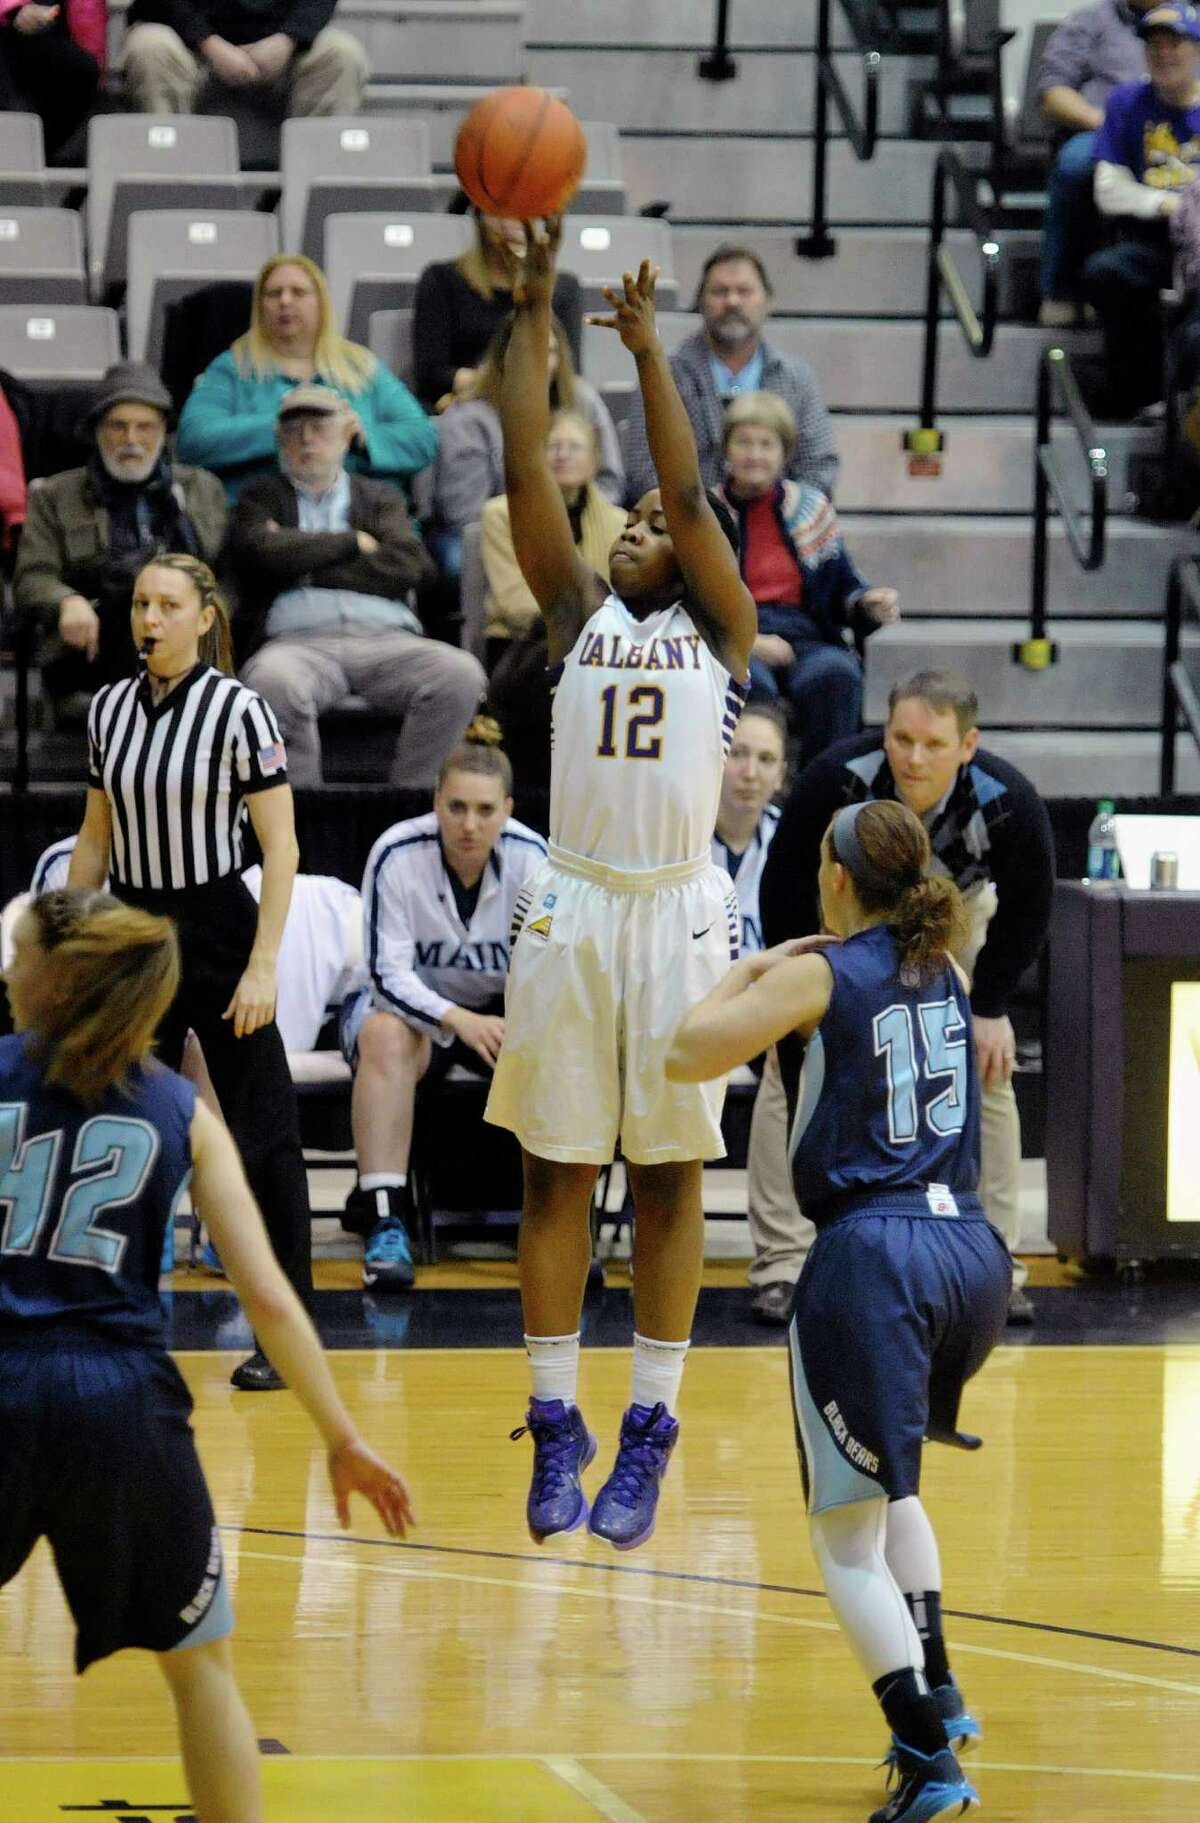 ImaniTate of UAlbany puts up a shot during their game against Maine on Sunday, Feb. 1, 2015, in Albany, N.Y. (Paul Buckowski / Times Union)